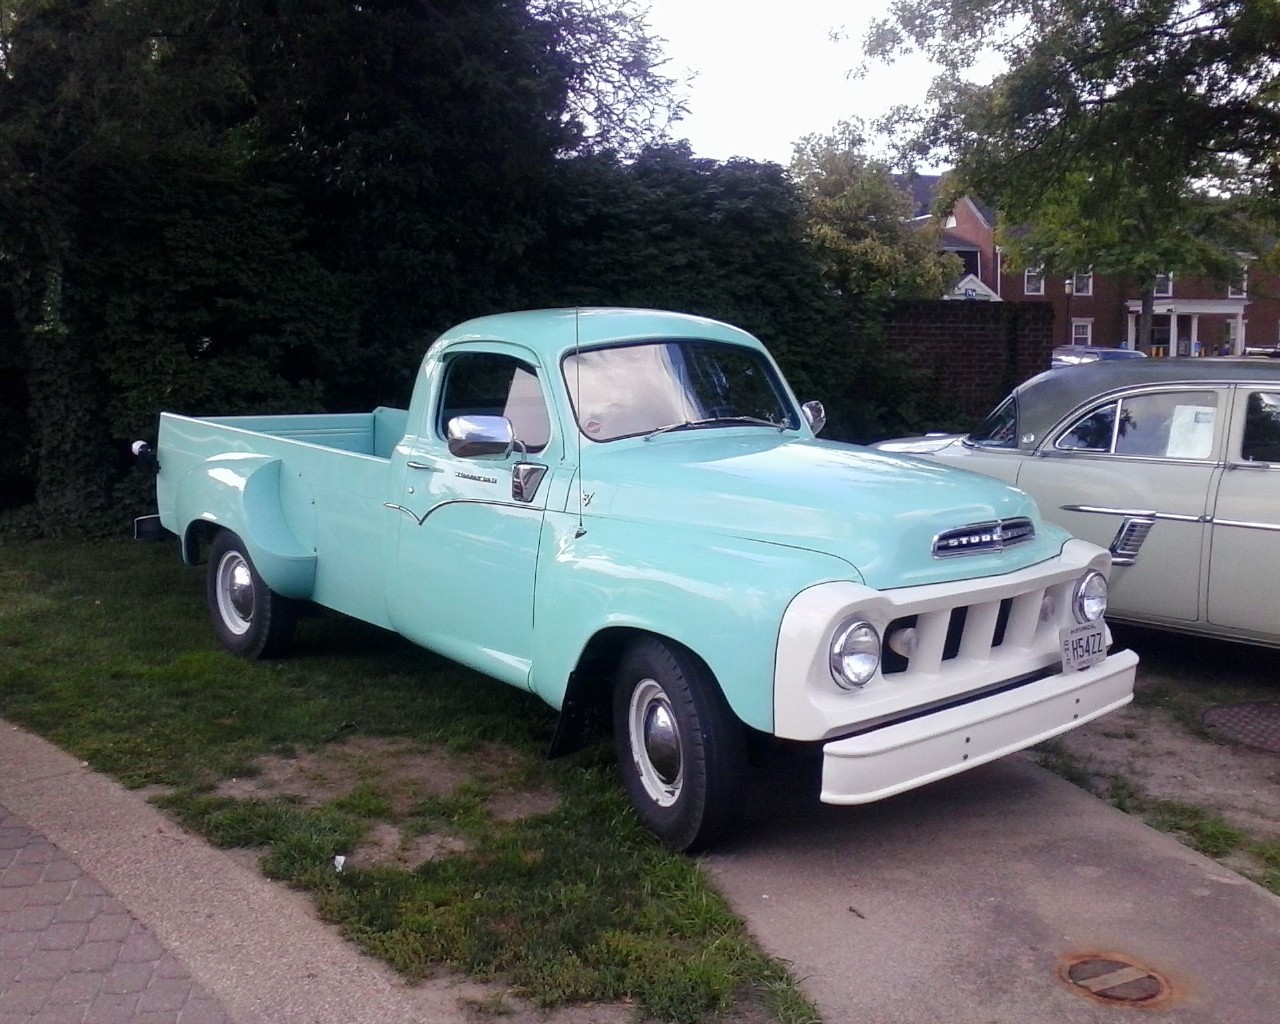 Wallpaper VERY COOL TRUCK Old Classic Cool Blue Cars Machines 1280x1024